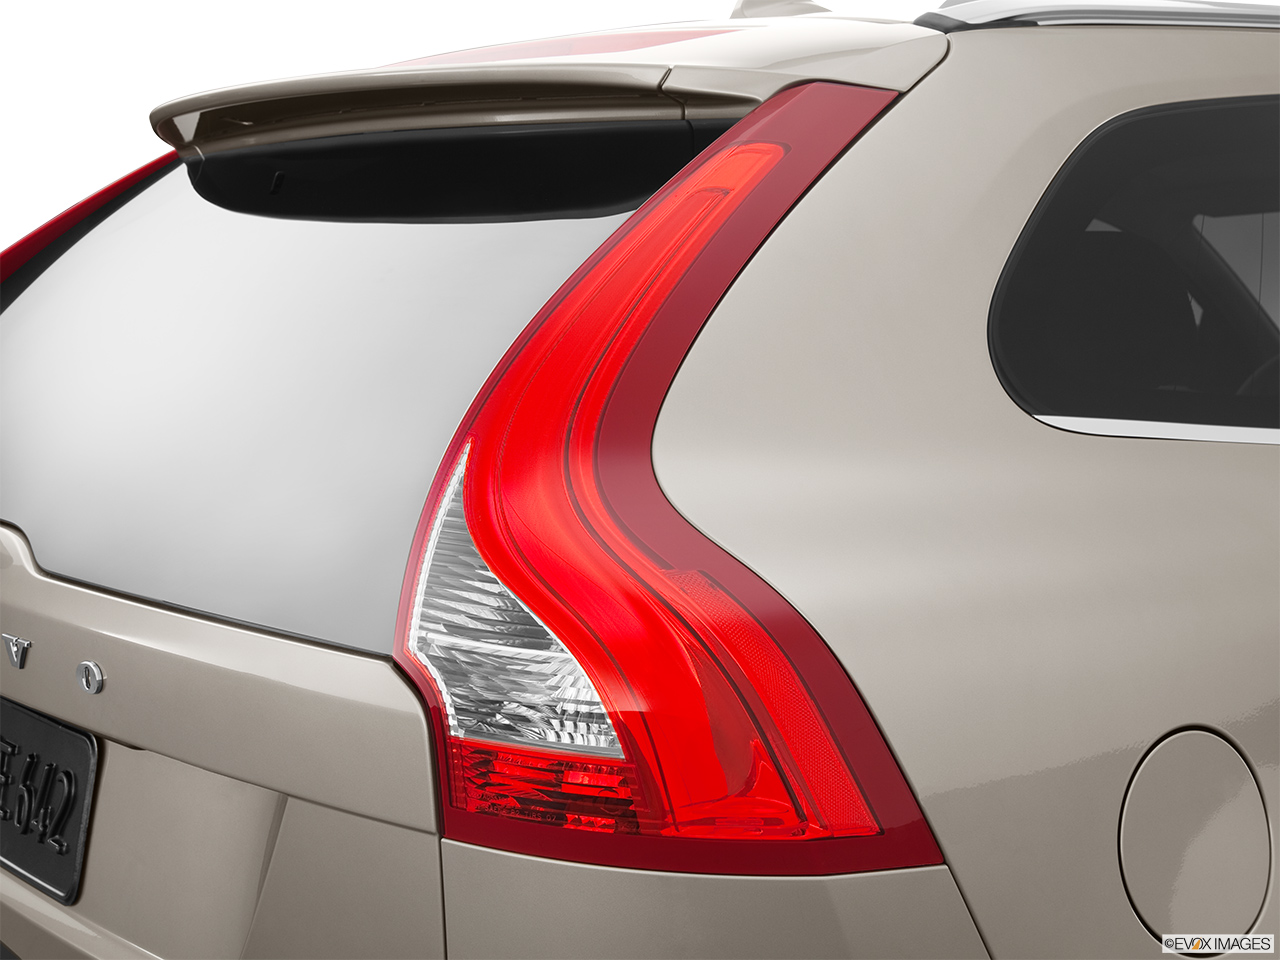 2013 Volvo XC60 3.2 FWD Premier Plus Passenger Side Taillight.